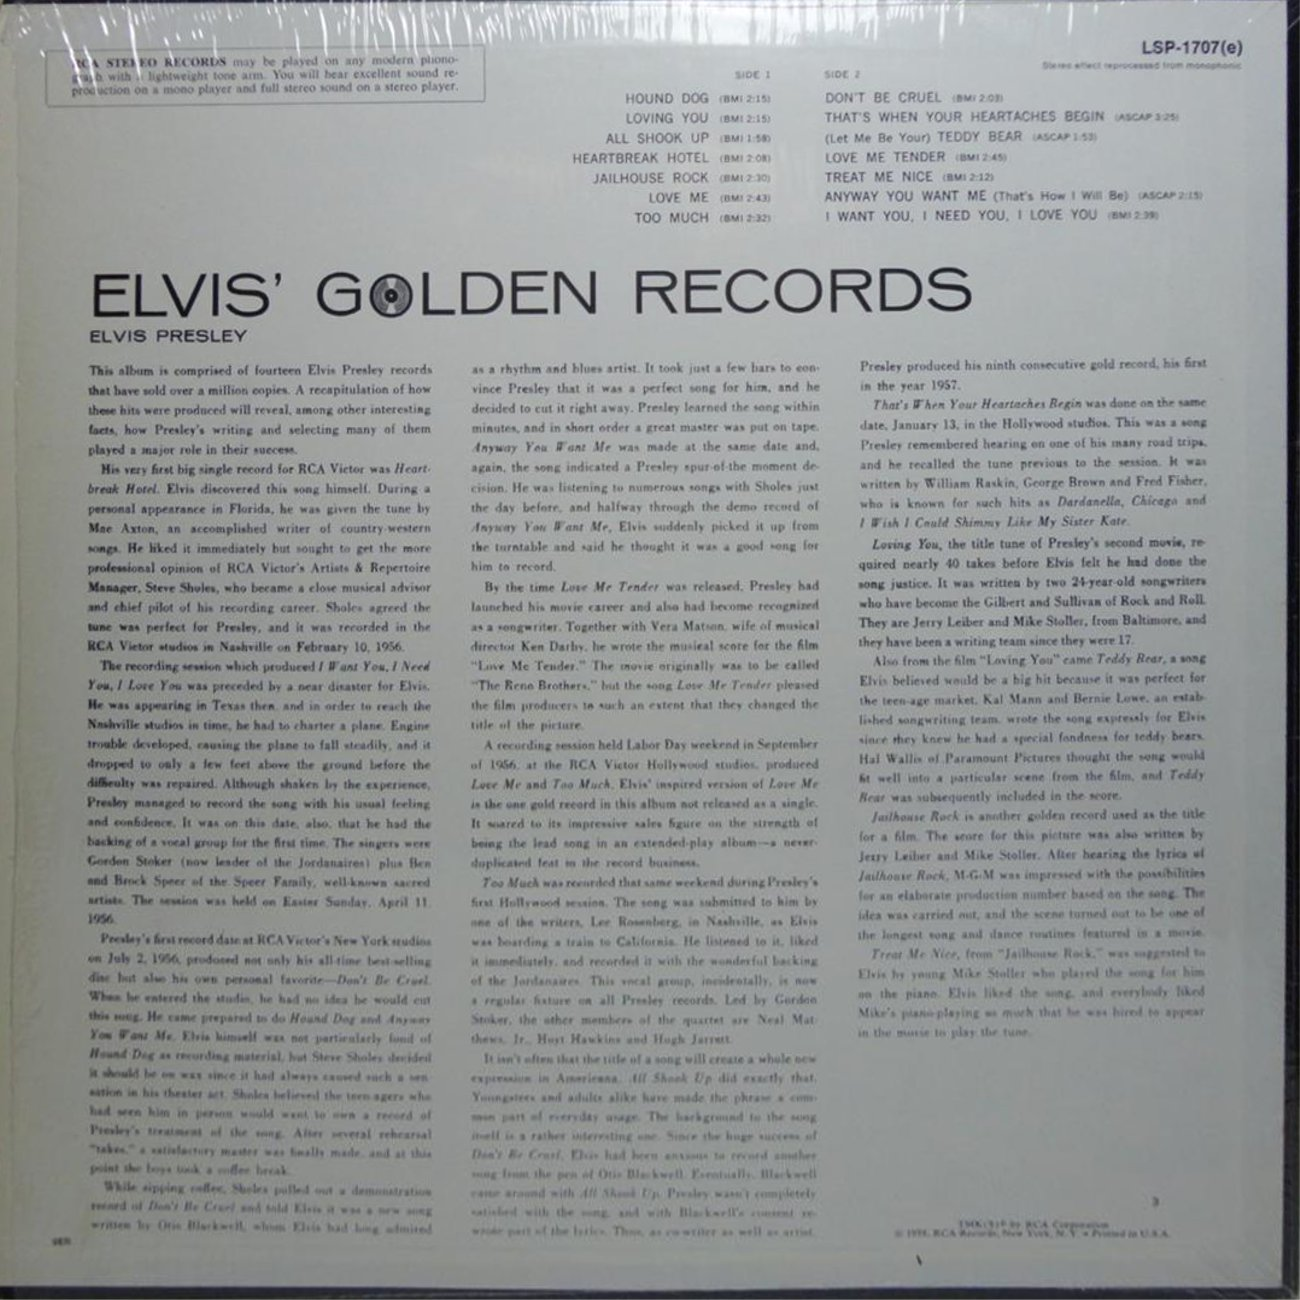 ELVIS' GOLD RECORDS  Lsp1707bwhjdy